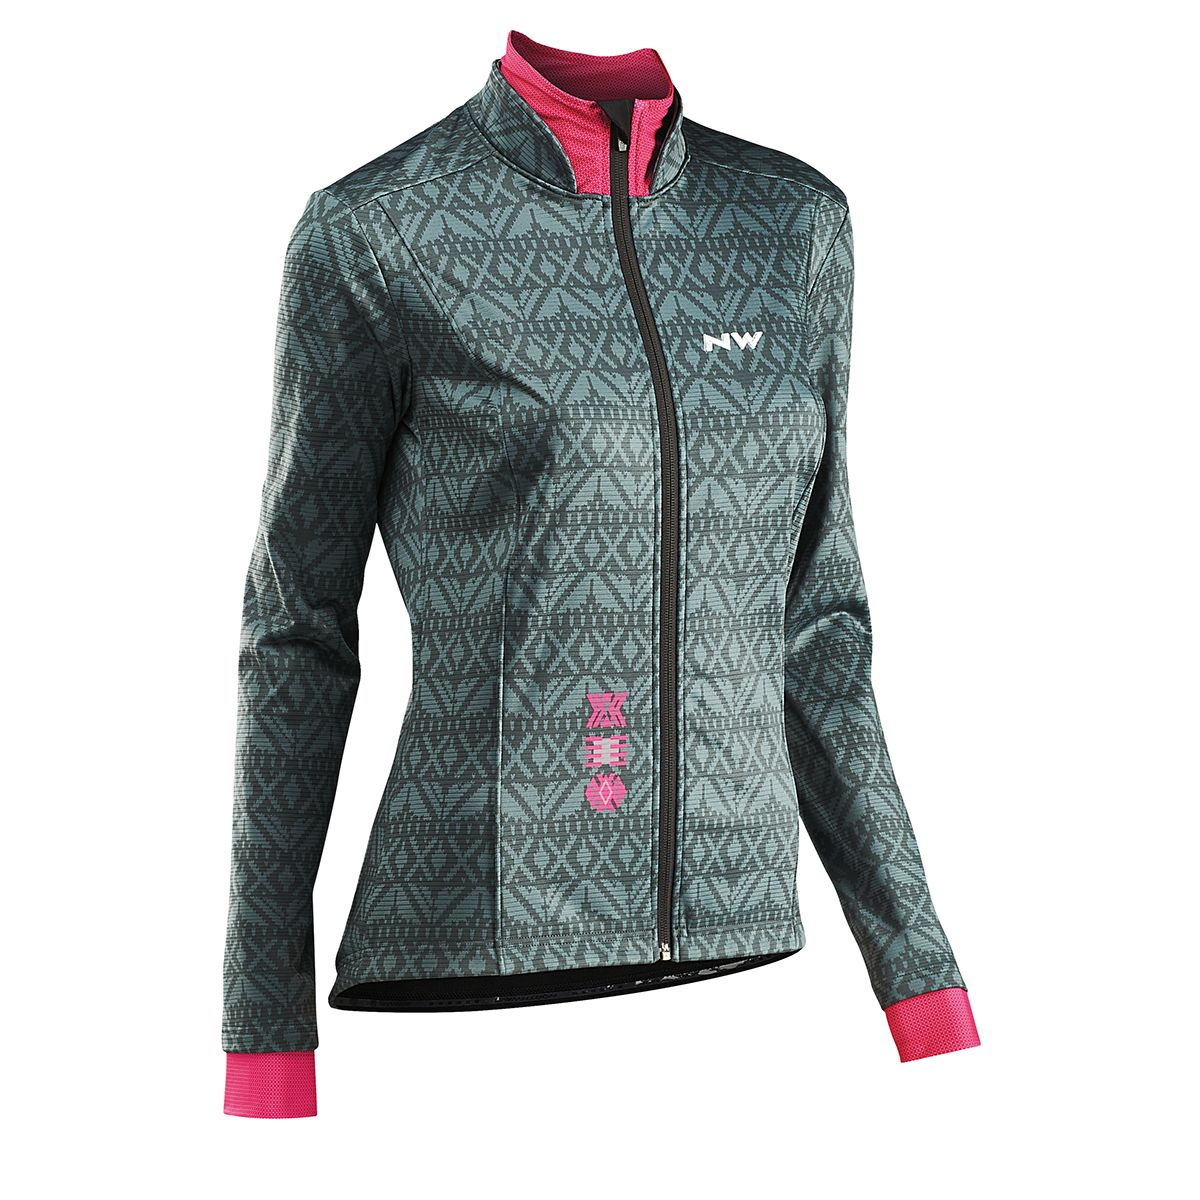 ALLURE JACKET TOTAL PROTECTION for women